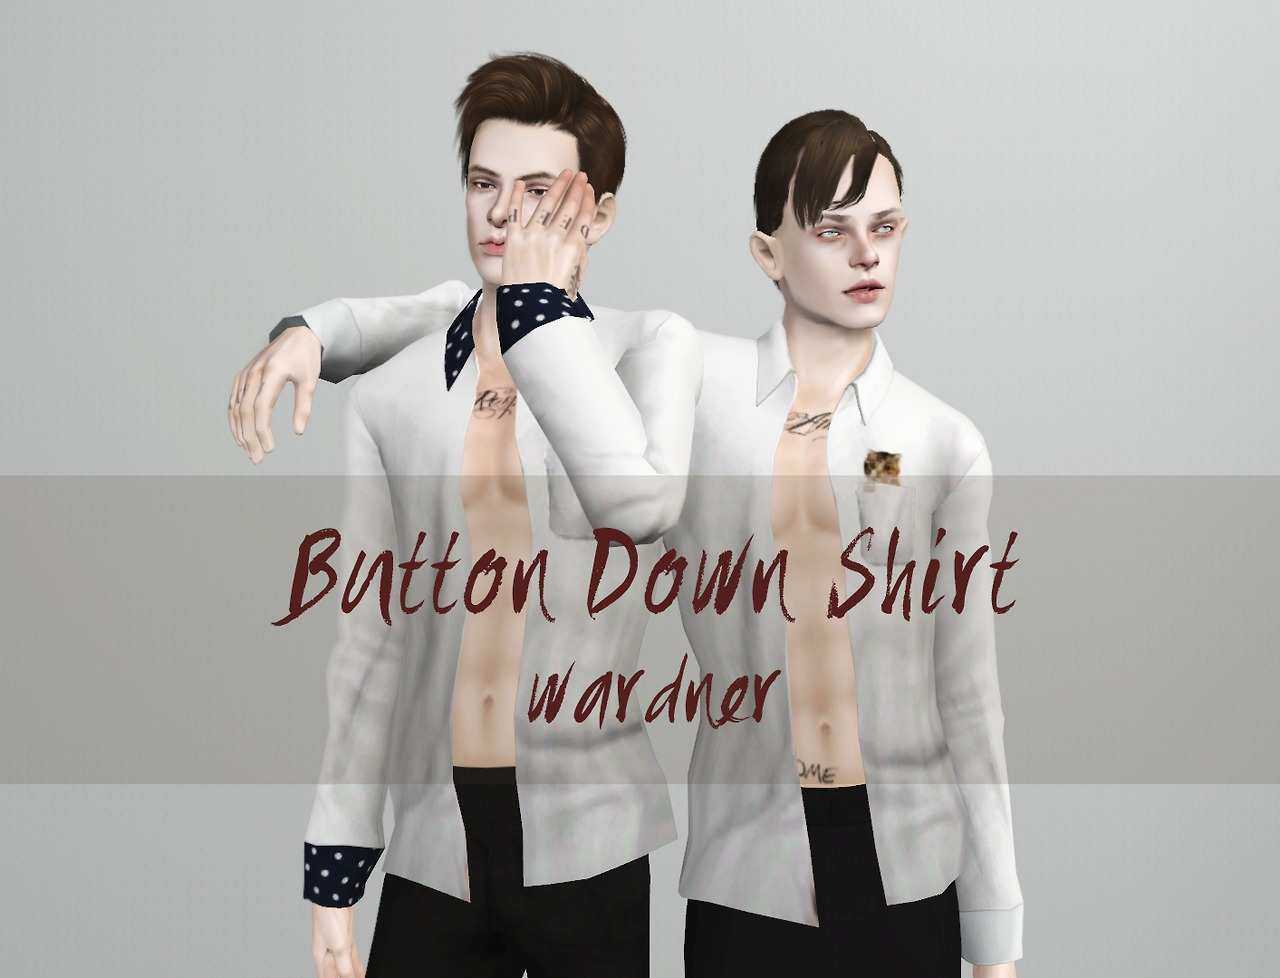 Button down shirts by wardner